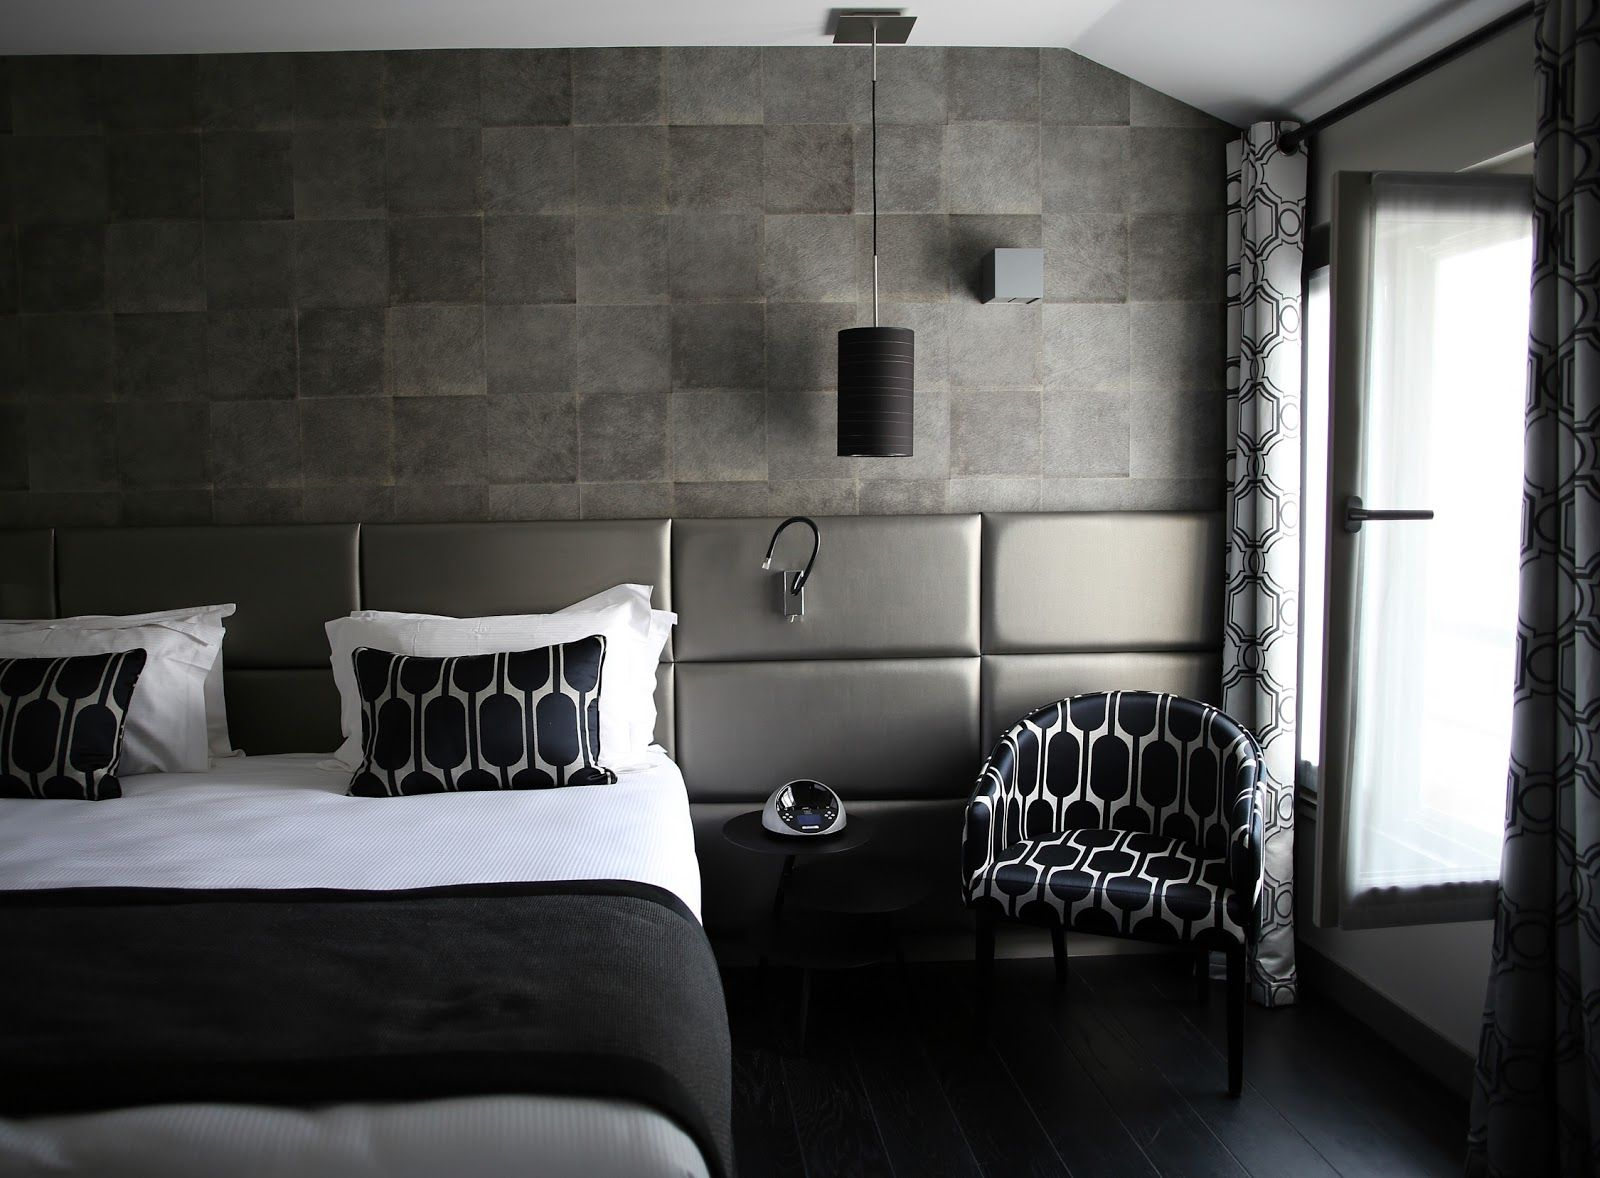 Bedroom Decorating Ideas With Gray Walls 18 Exquisite Grey Themed Bedroom Design Ideas Exquisite